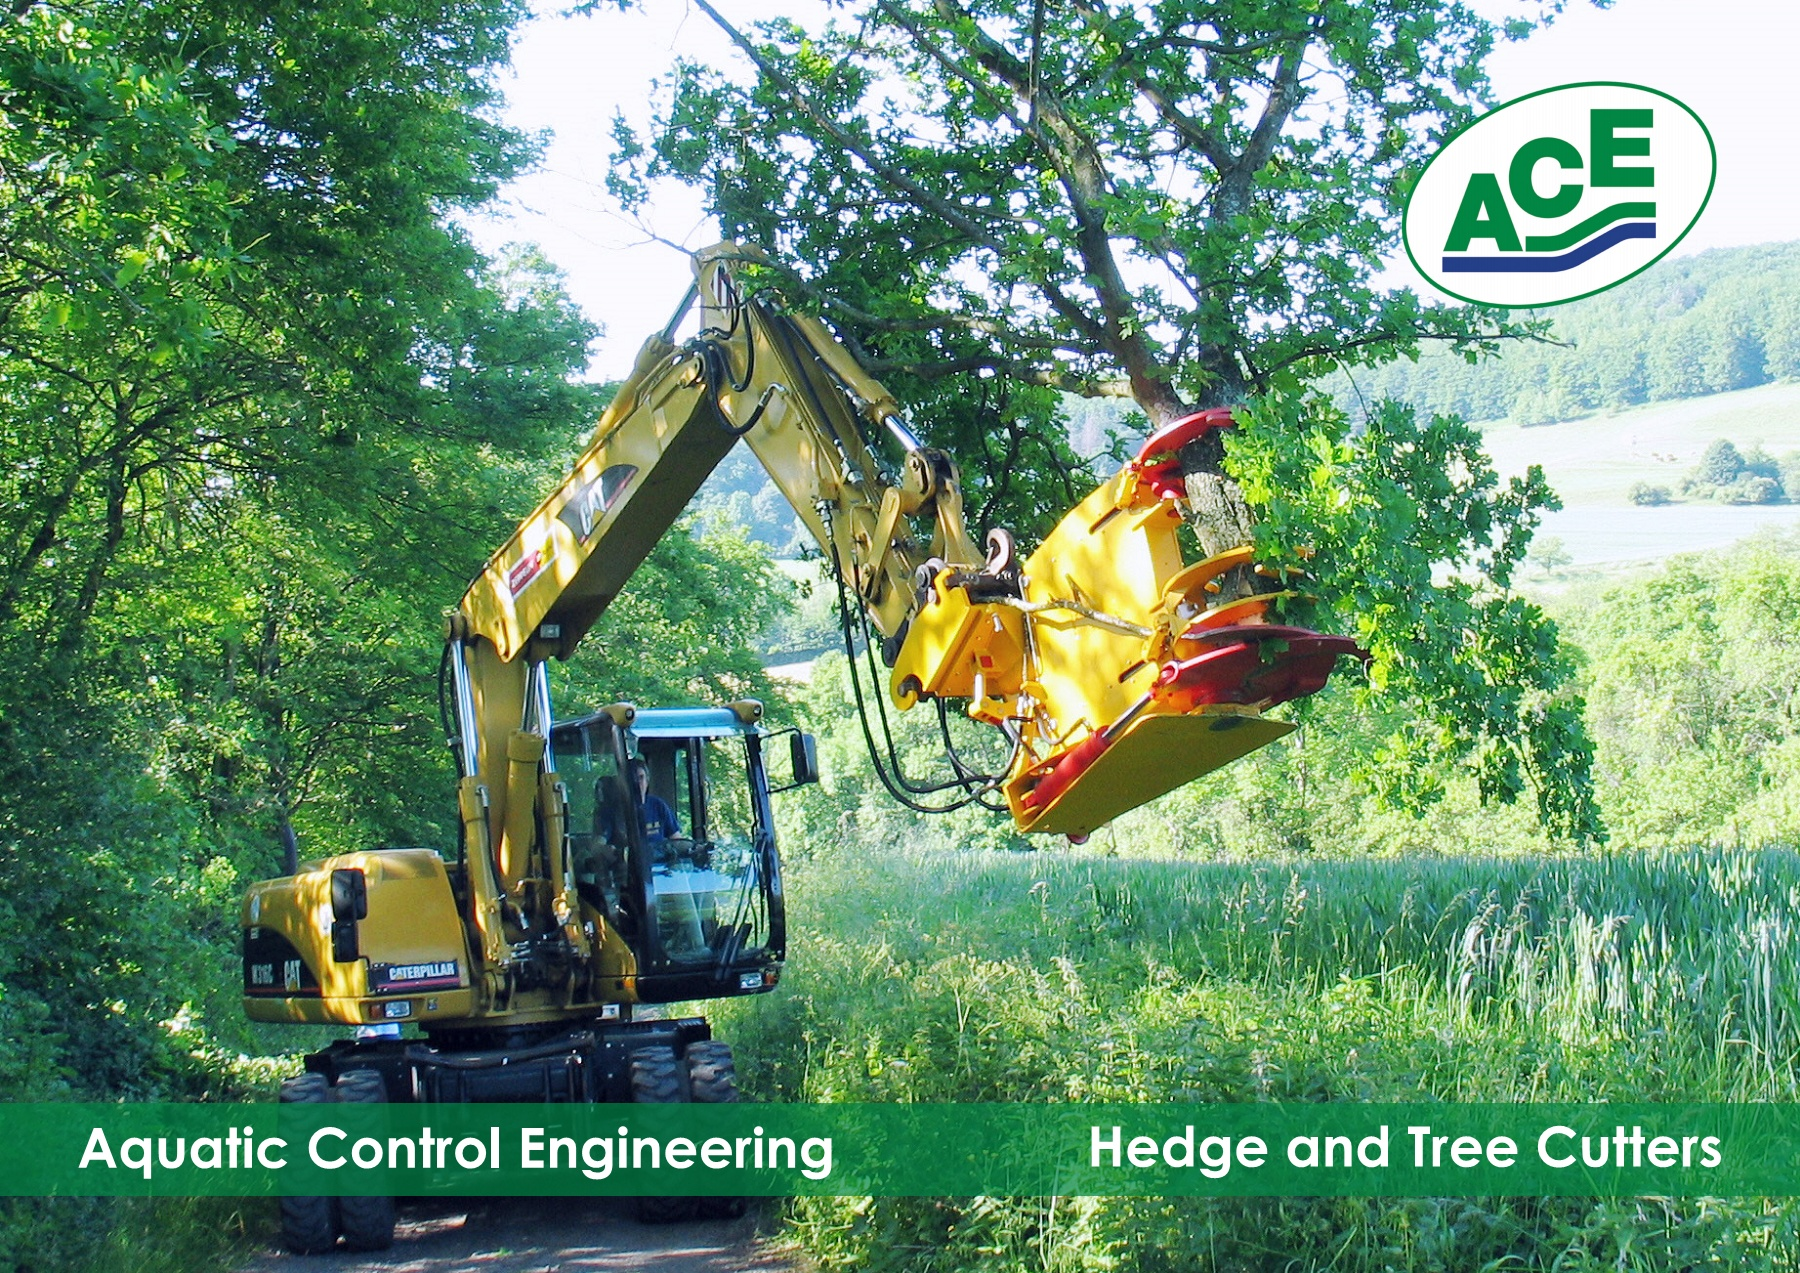 Tree Cutter Hedge And Tree Cutter Brochure